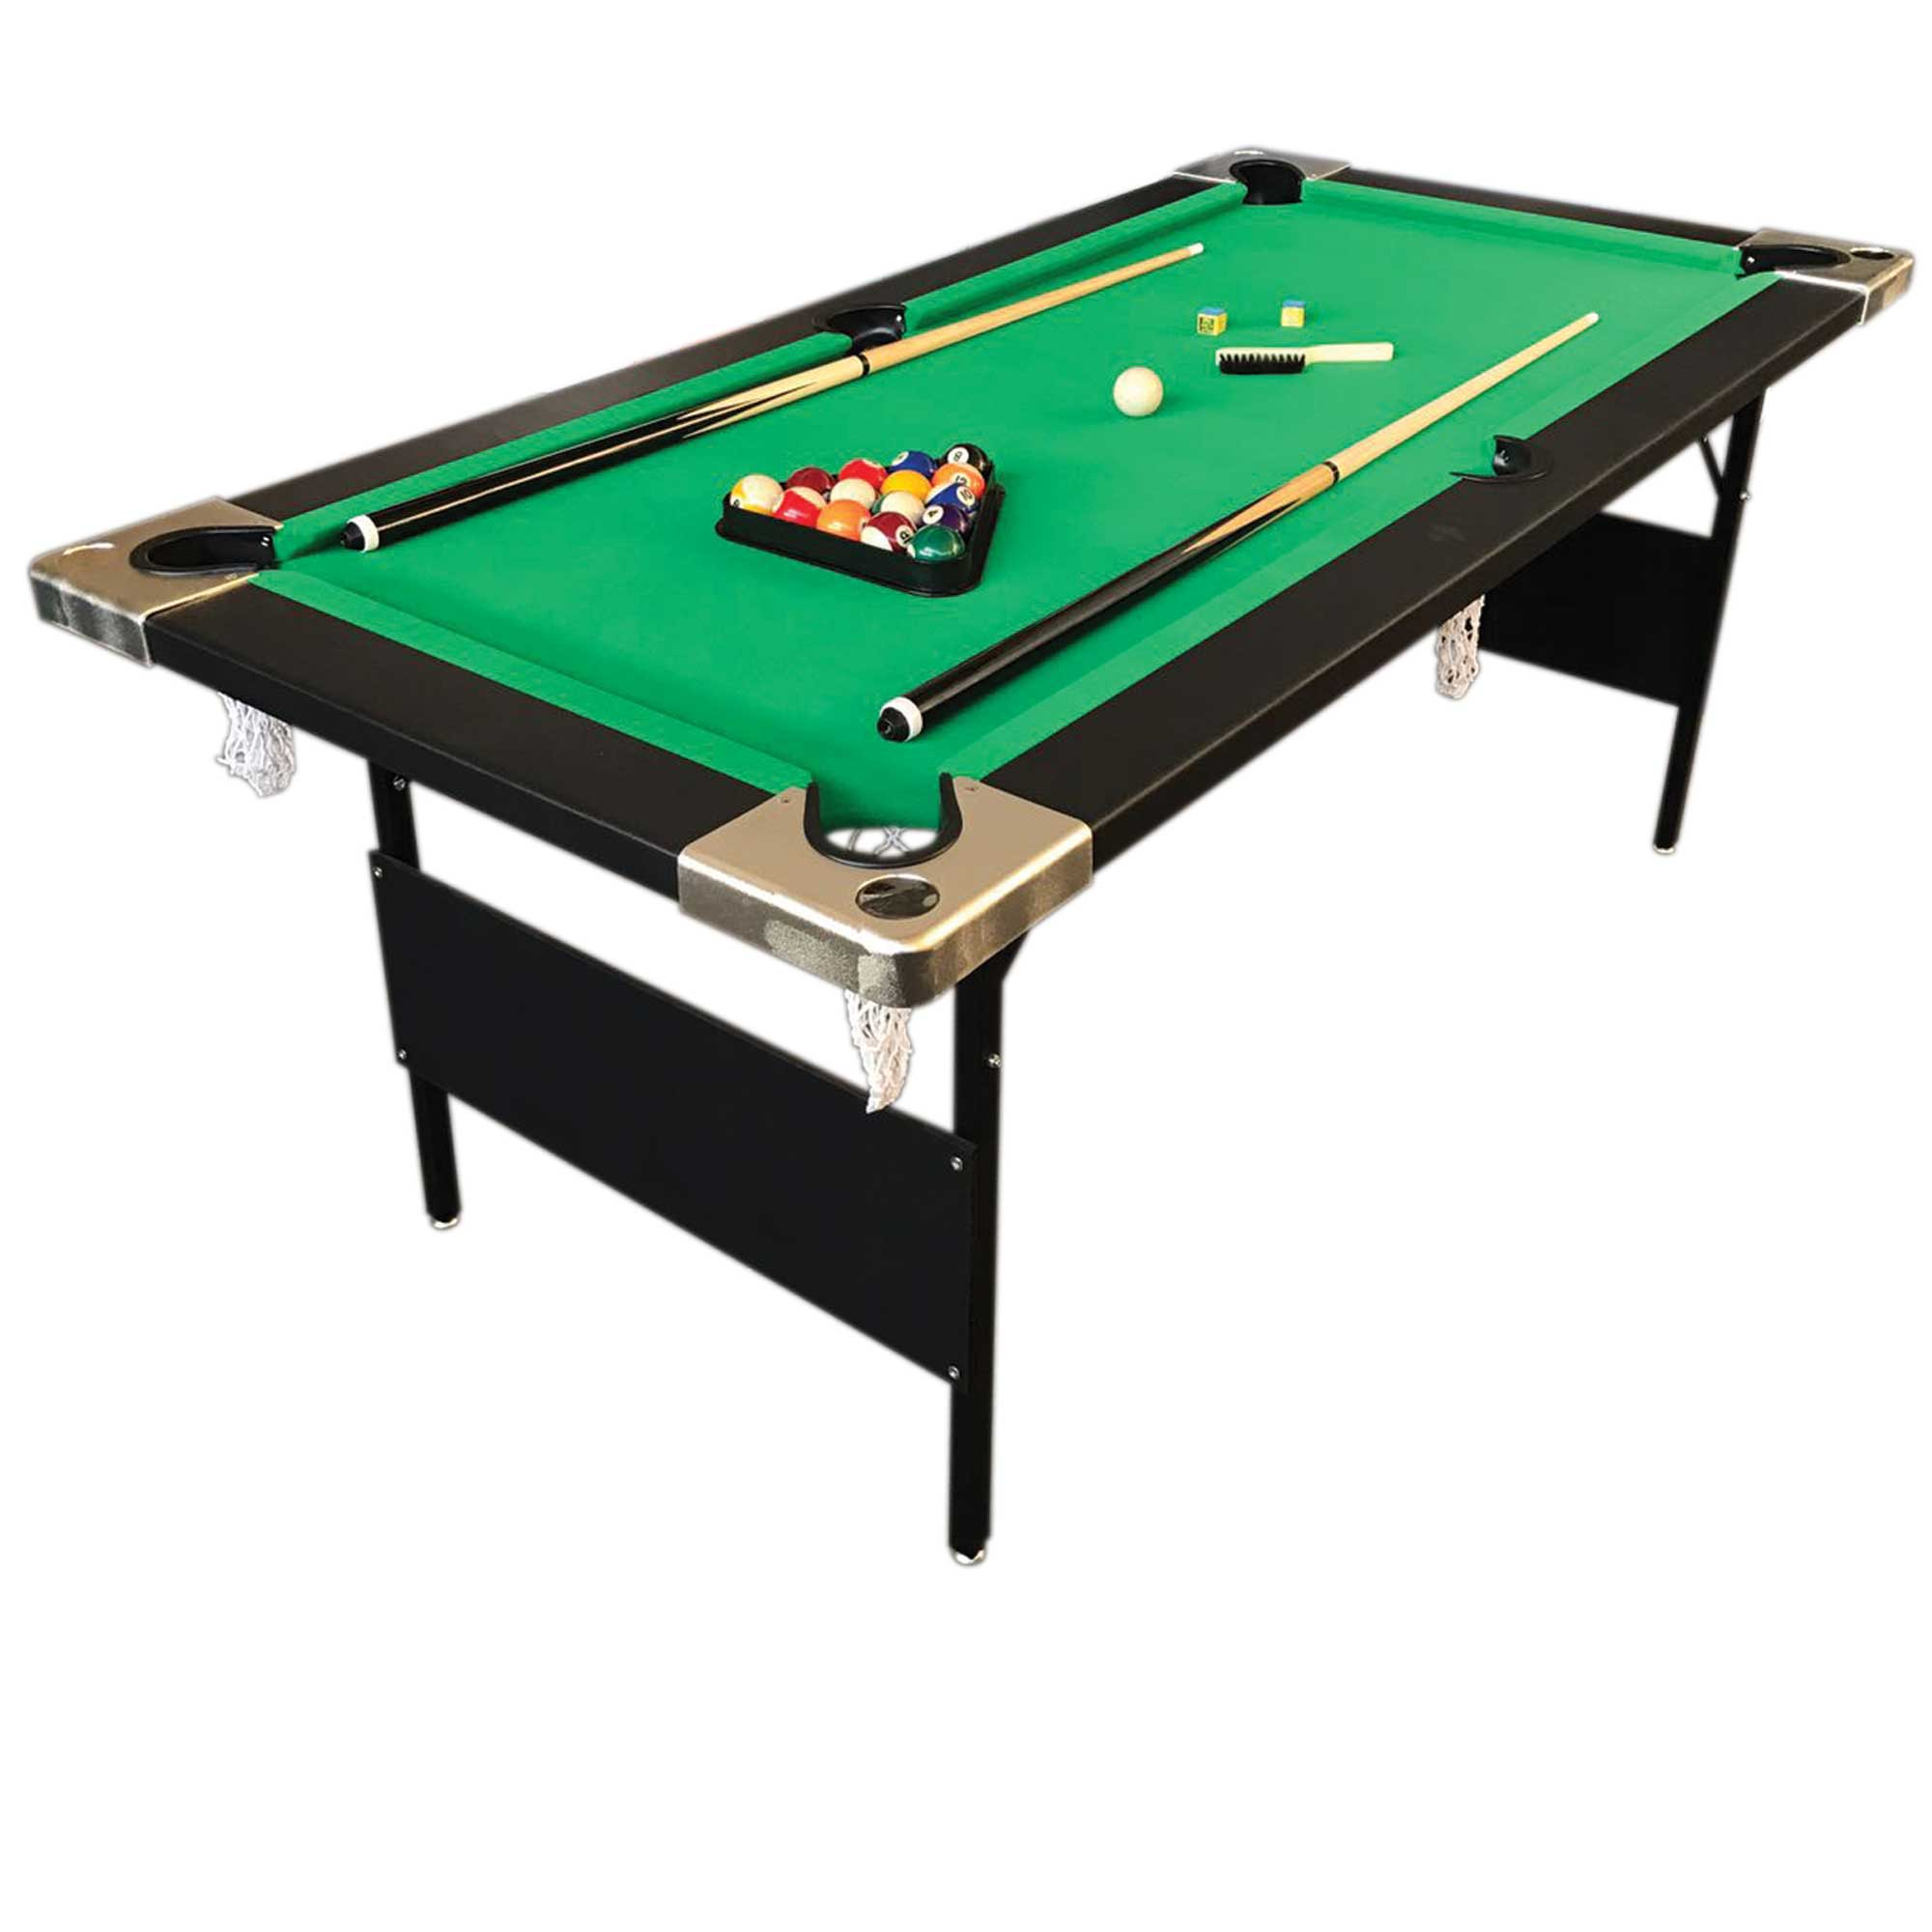 6 39 feet billiard pool table portable snooker accessories included game colorado ebay - Billiard table accessories ...